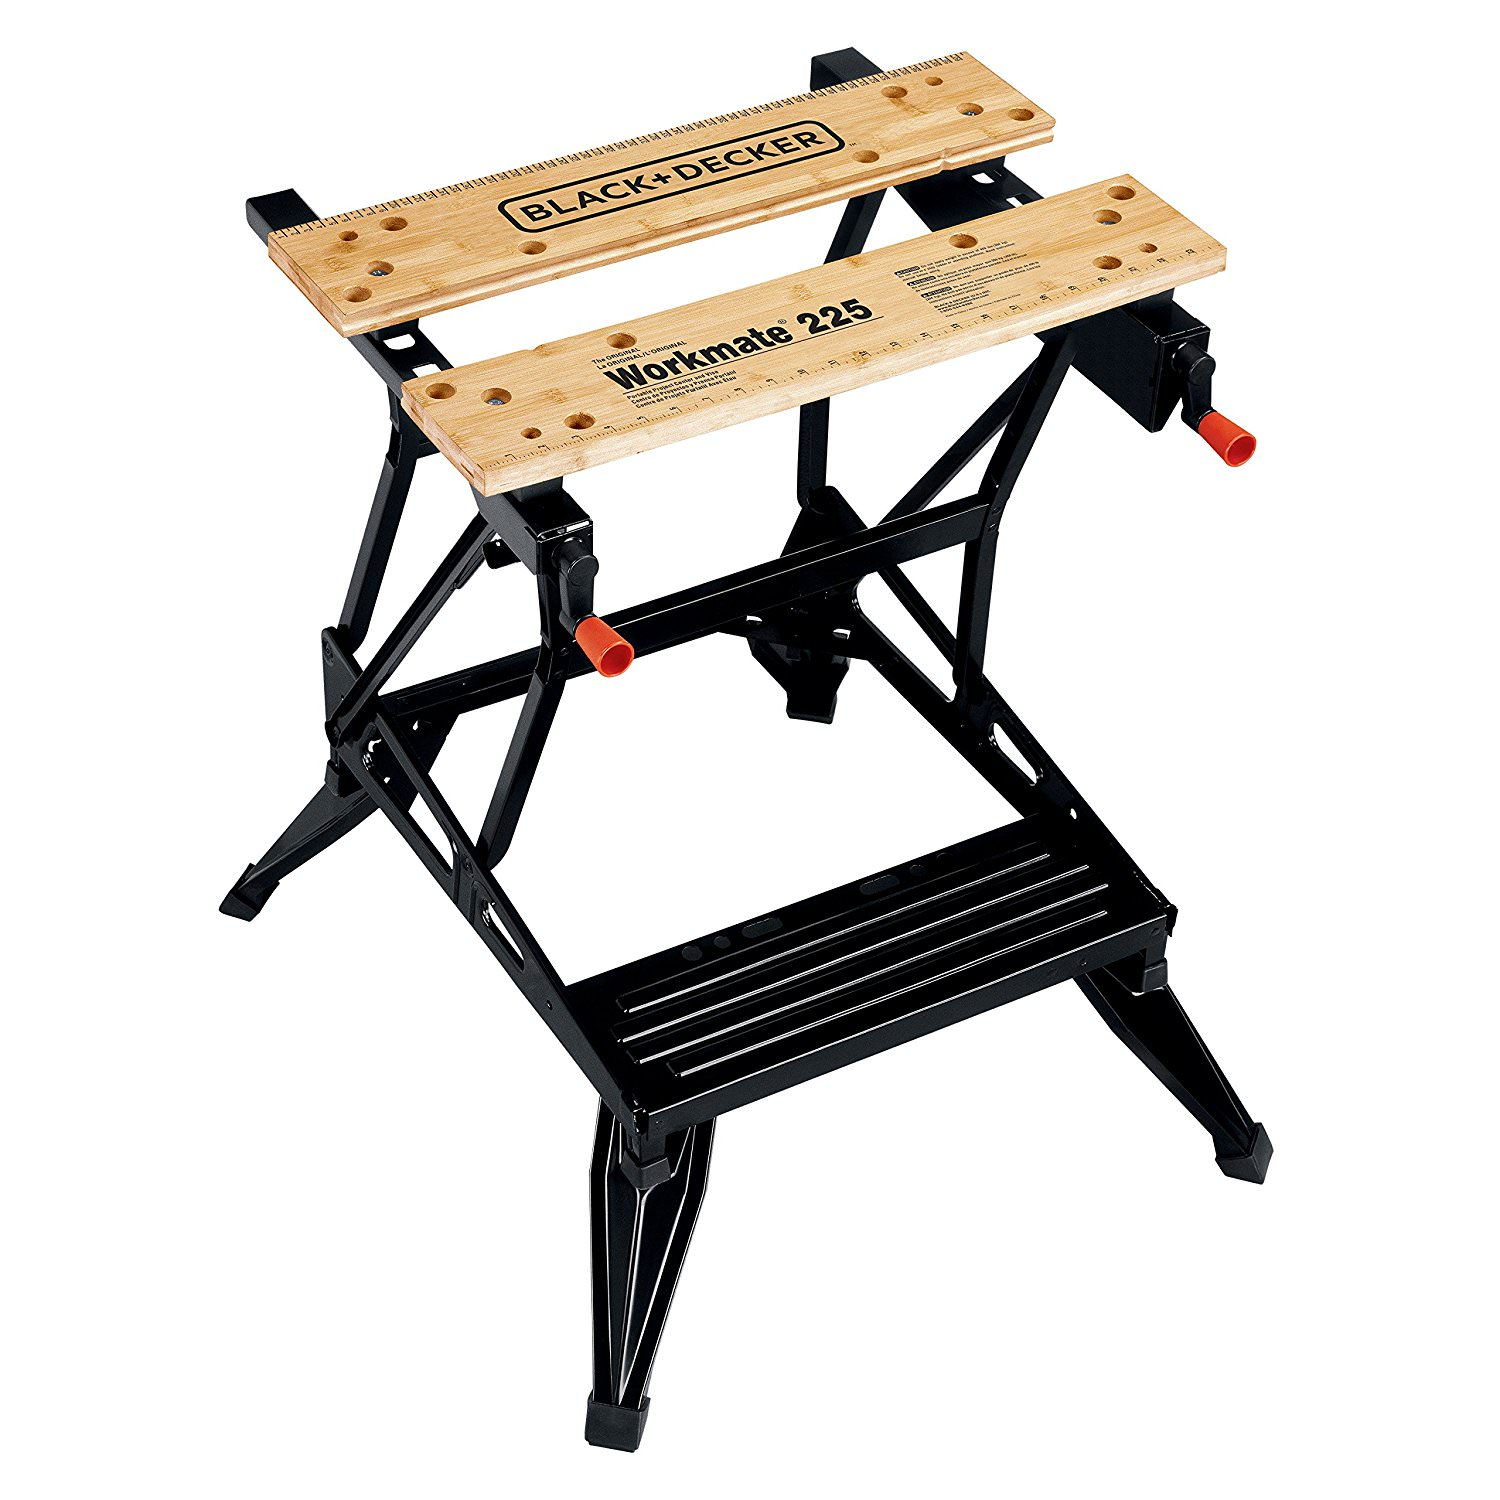 BLACK+DECKER WM225 Workmate 225 Portable Work Center and Vise